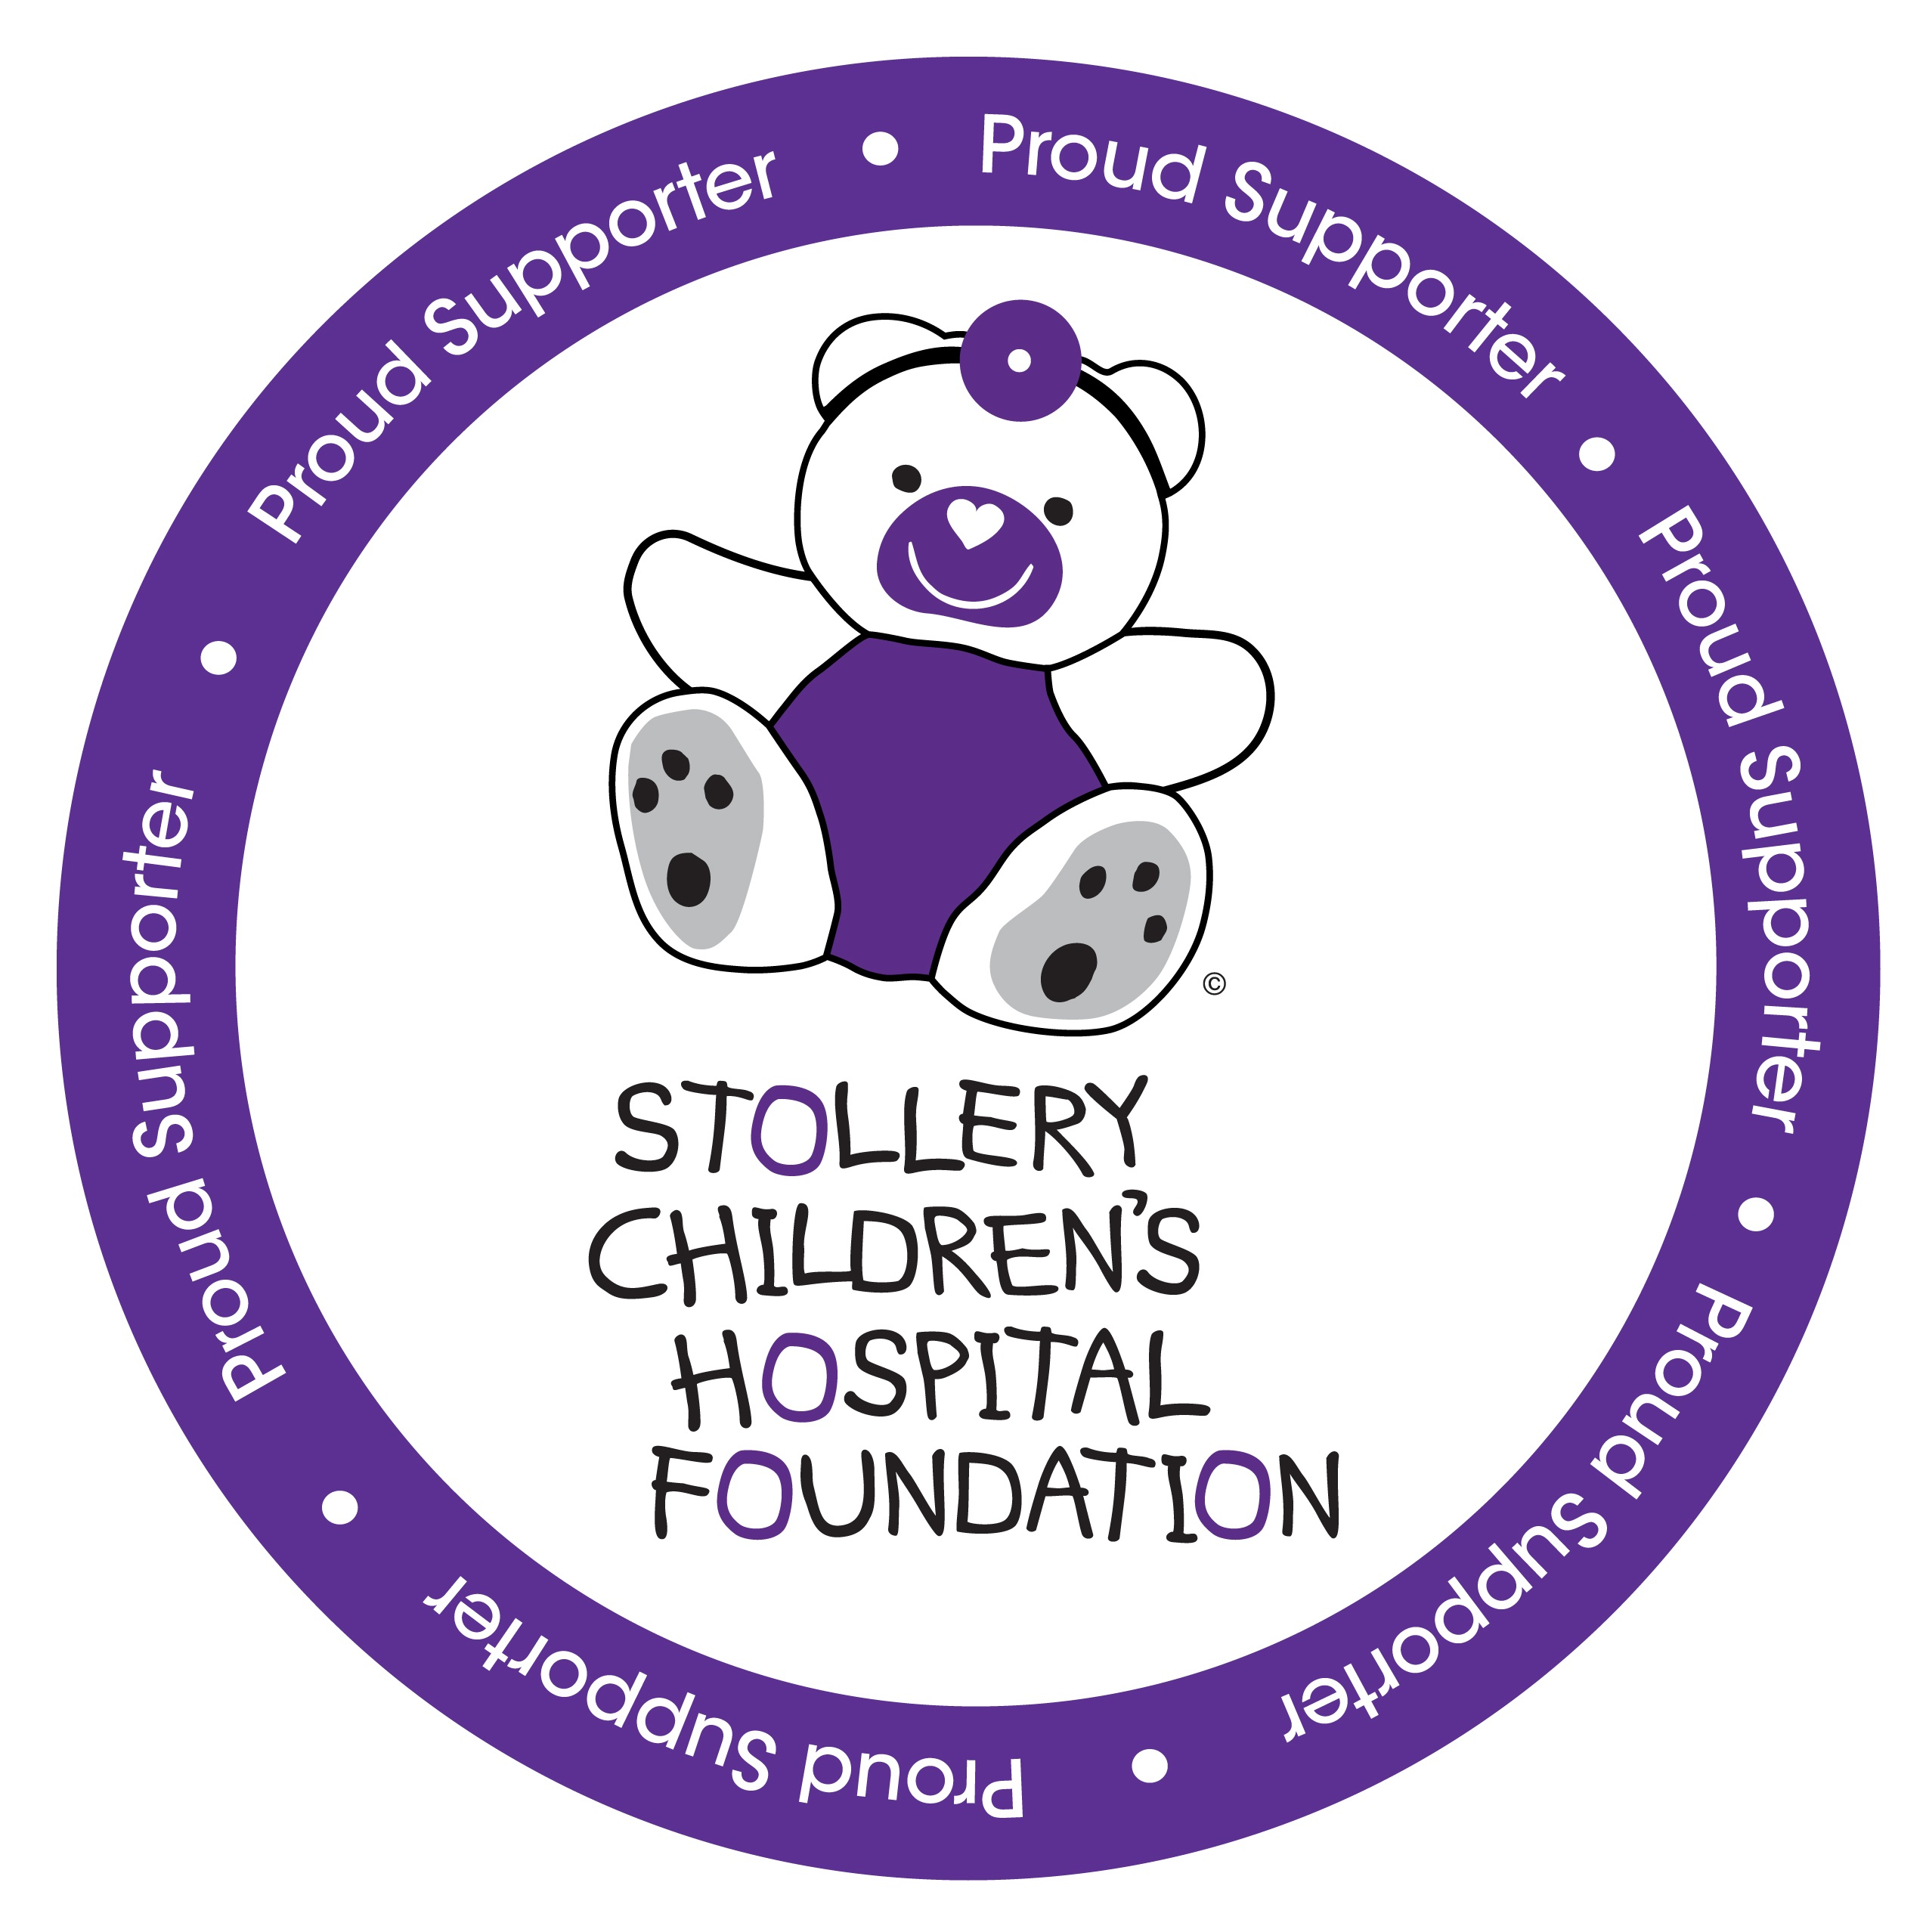 Donate now to the Stollery Children's Hospital Foundation